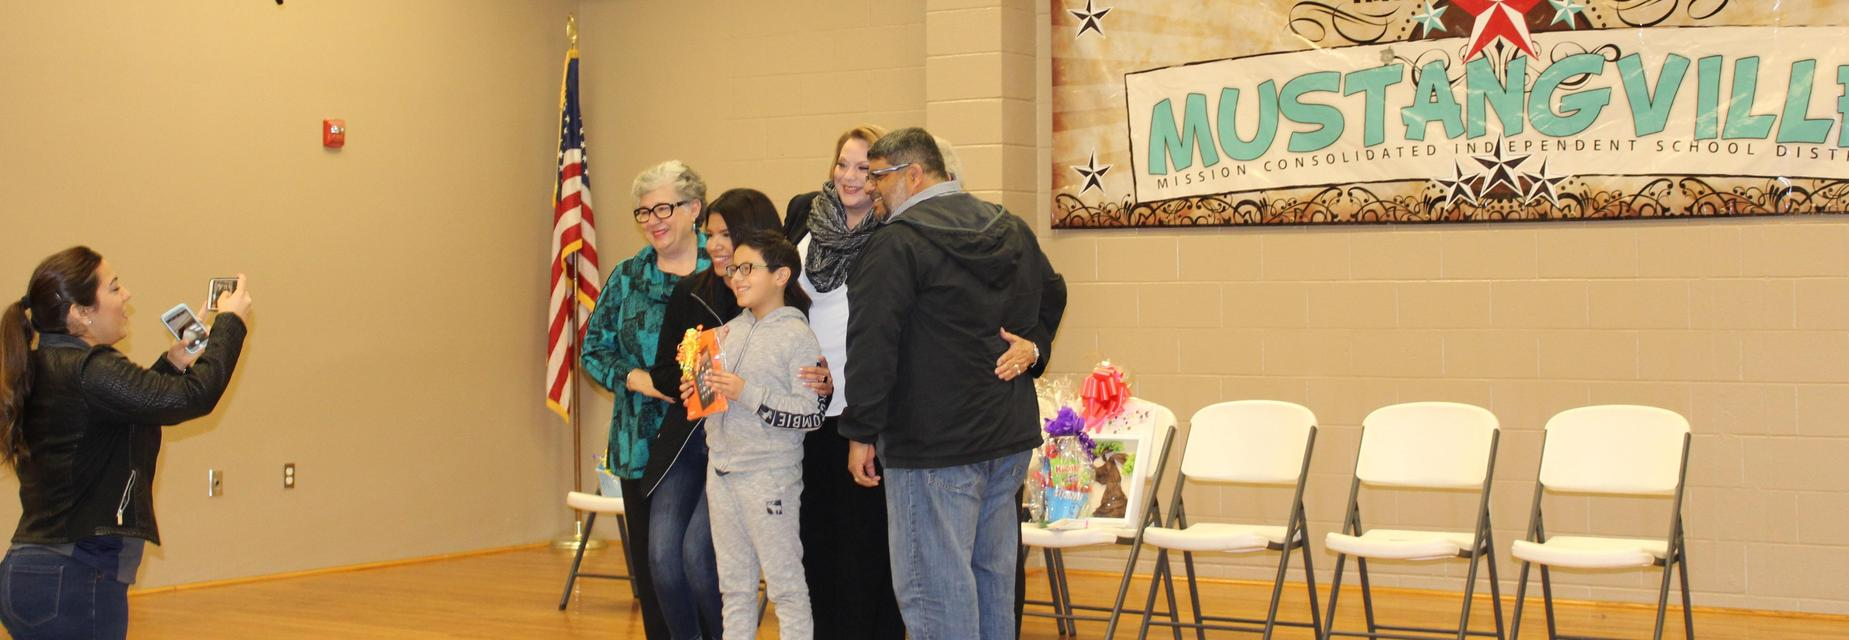 Joaquin with family and school board members